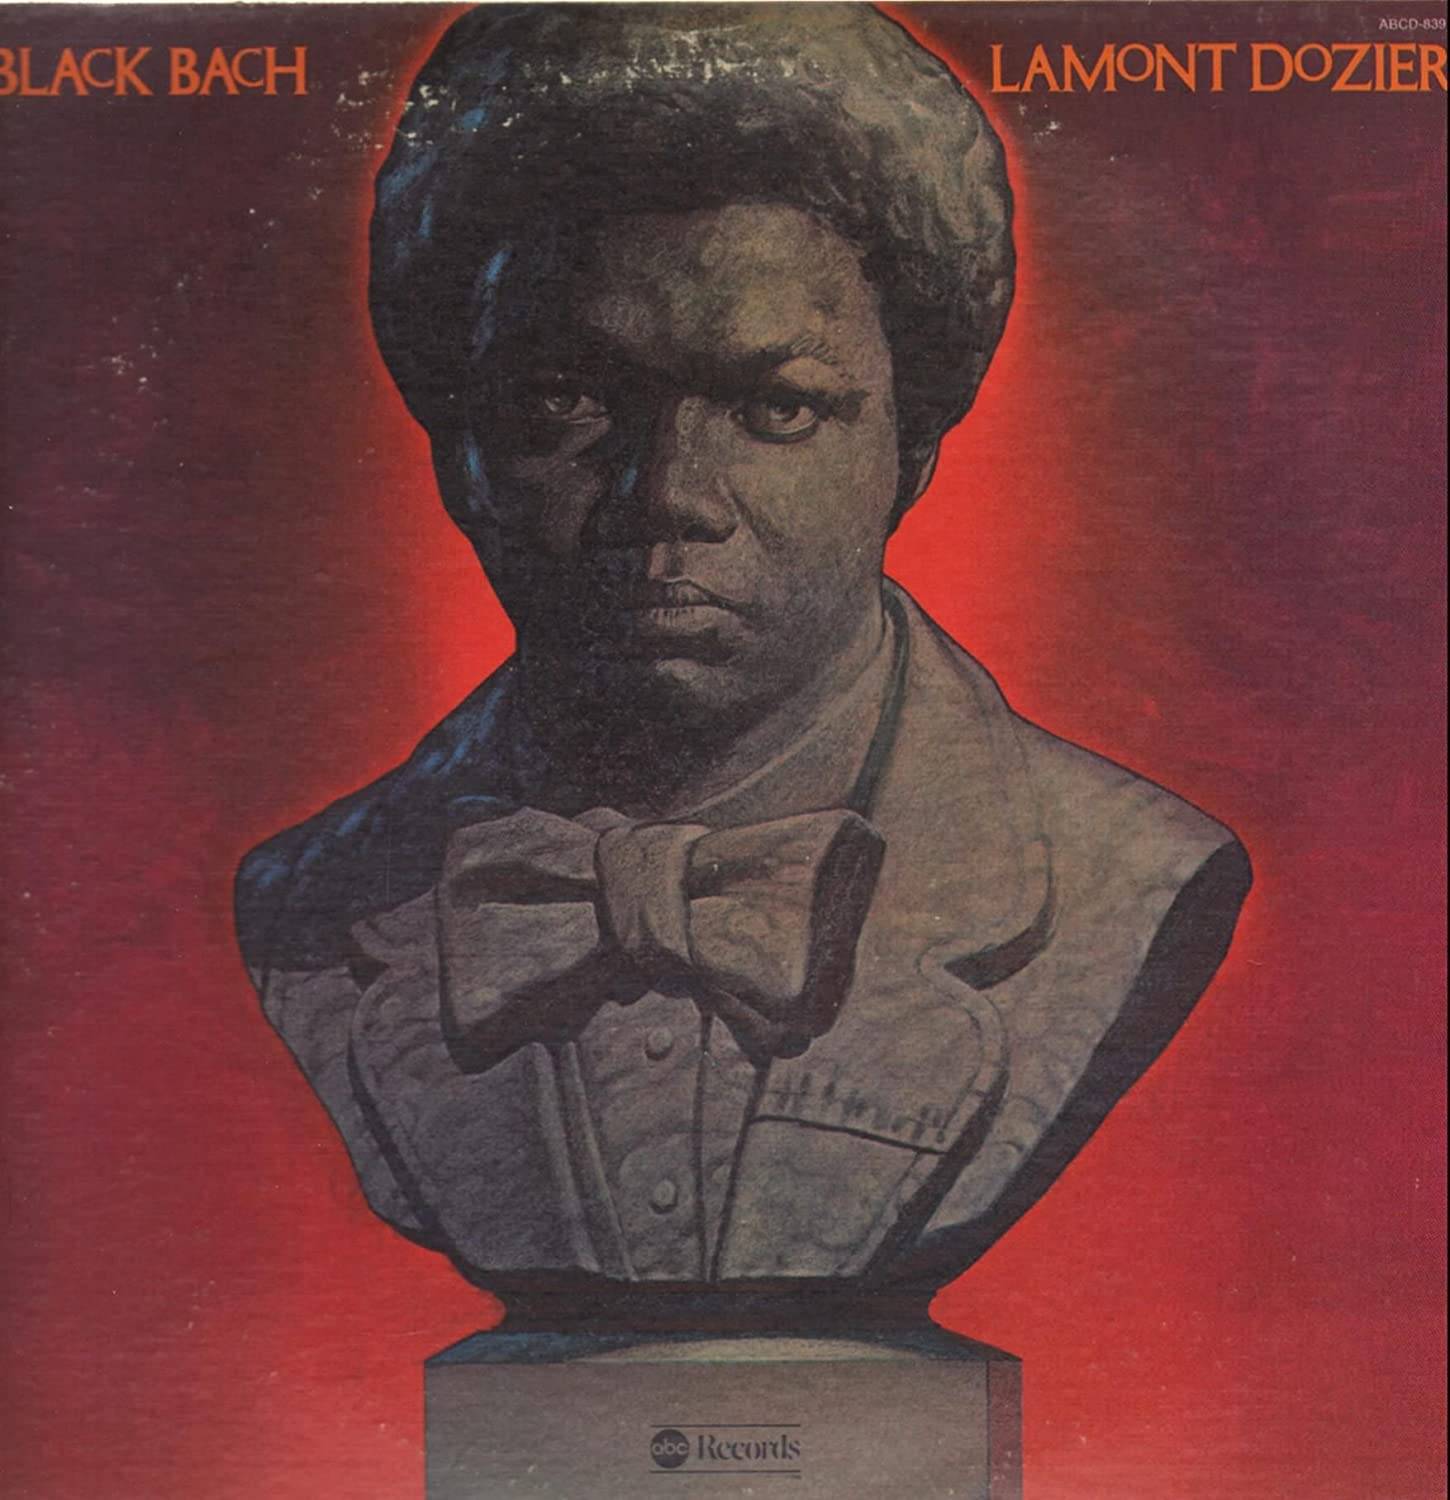 Lamont dozier – out here on my own (1973/2014) [hdtracks flac.